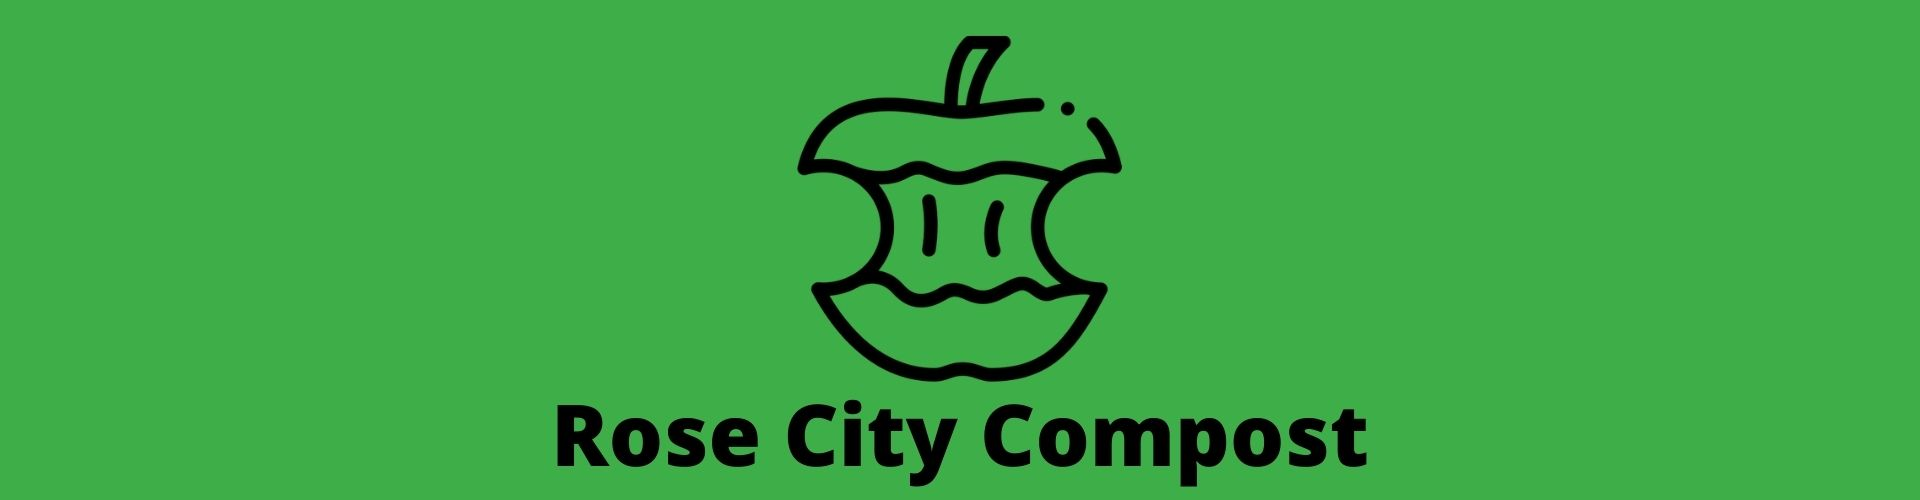 http://www.rosecitycompost.com/wp-content/uploads/2020/11/Rose-City-Compost.jpg